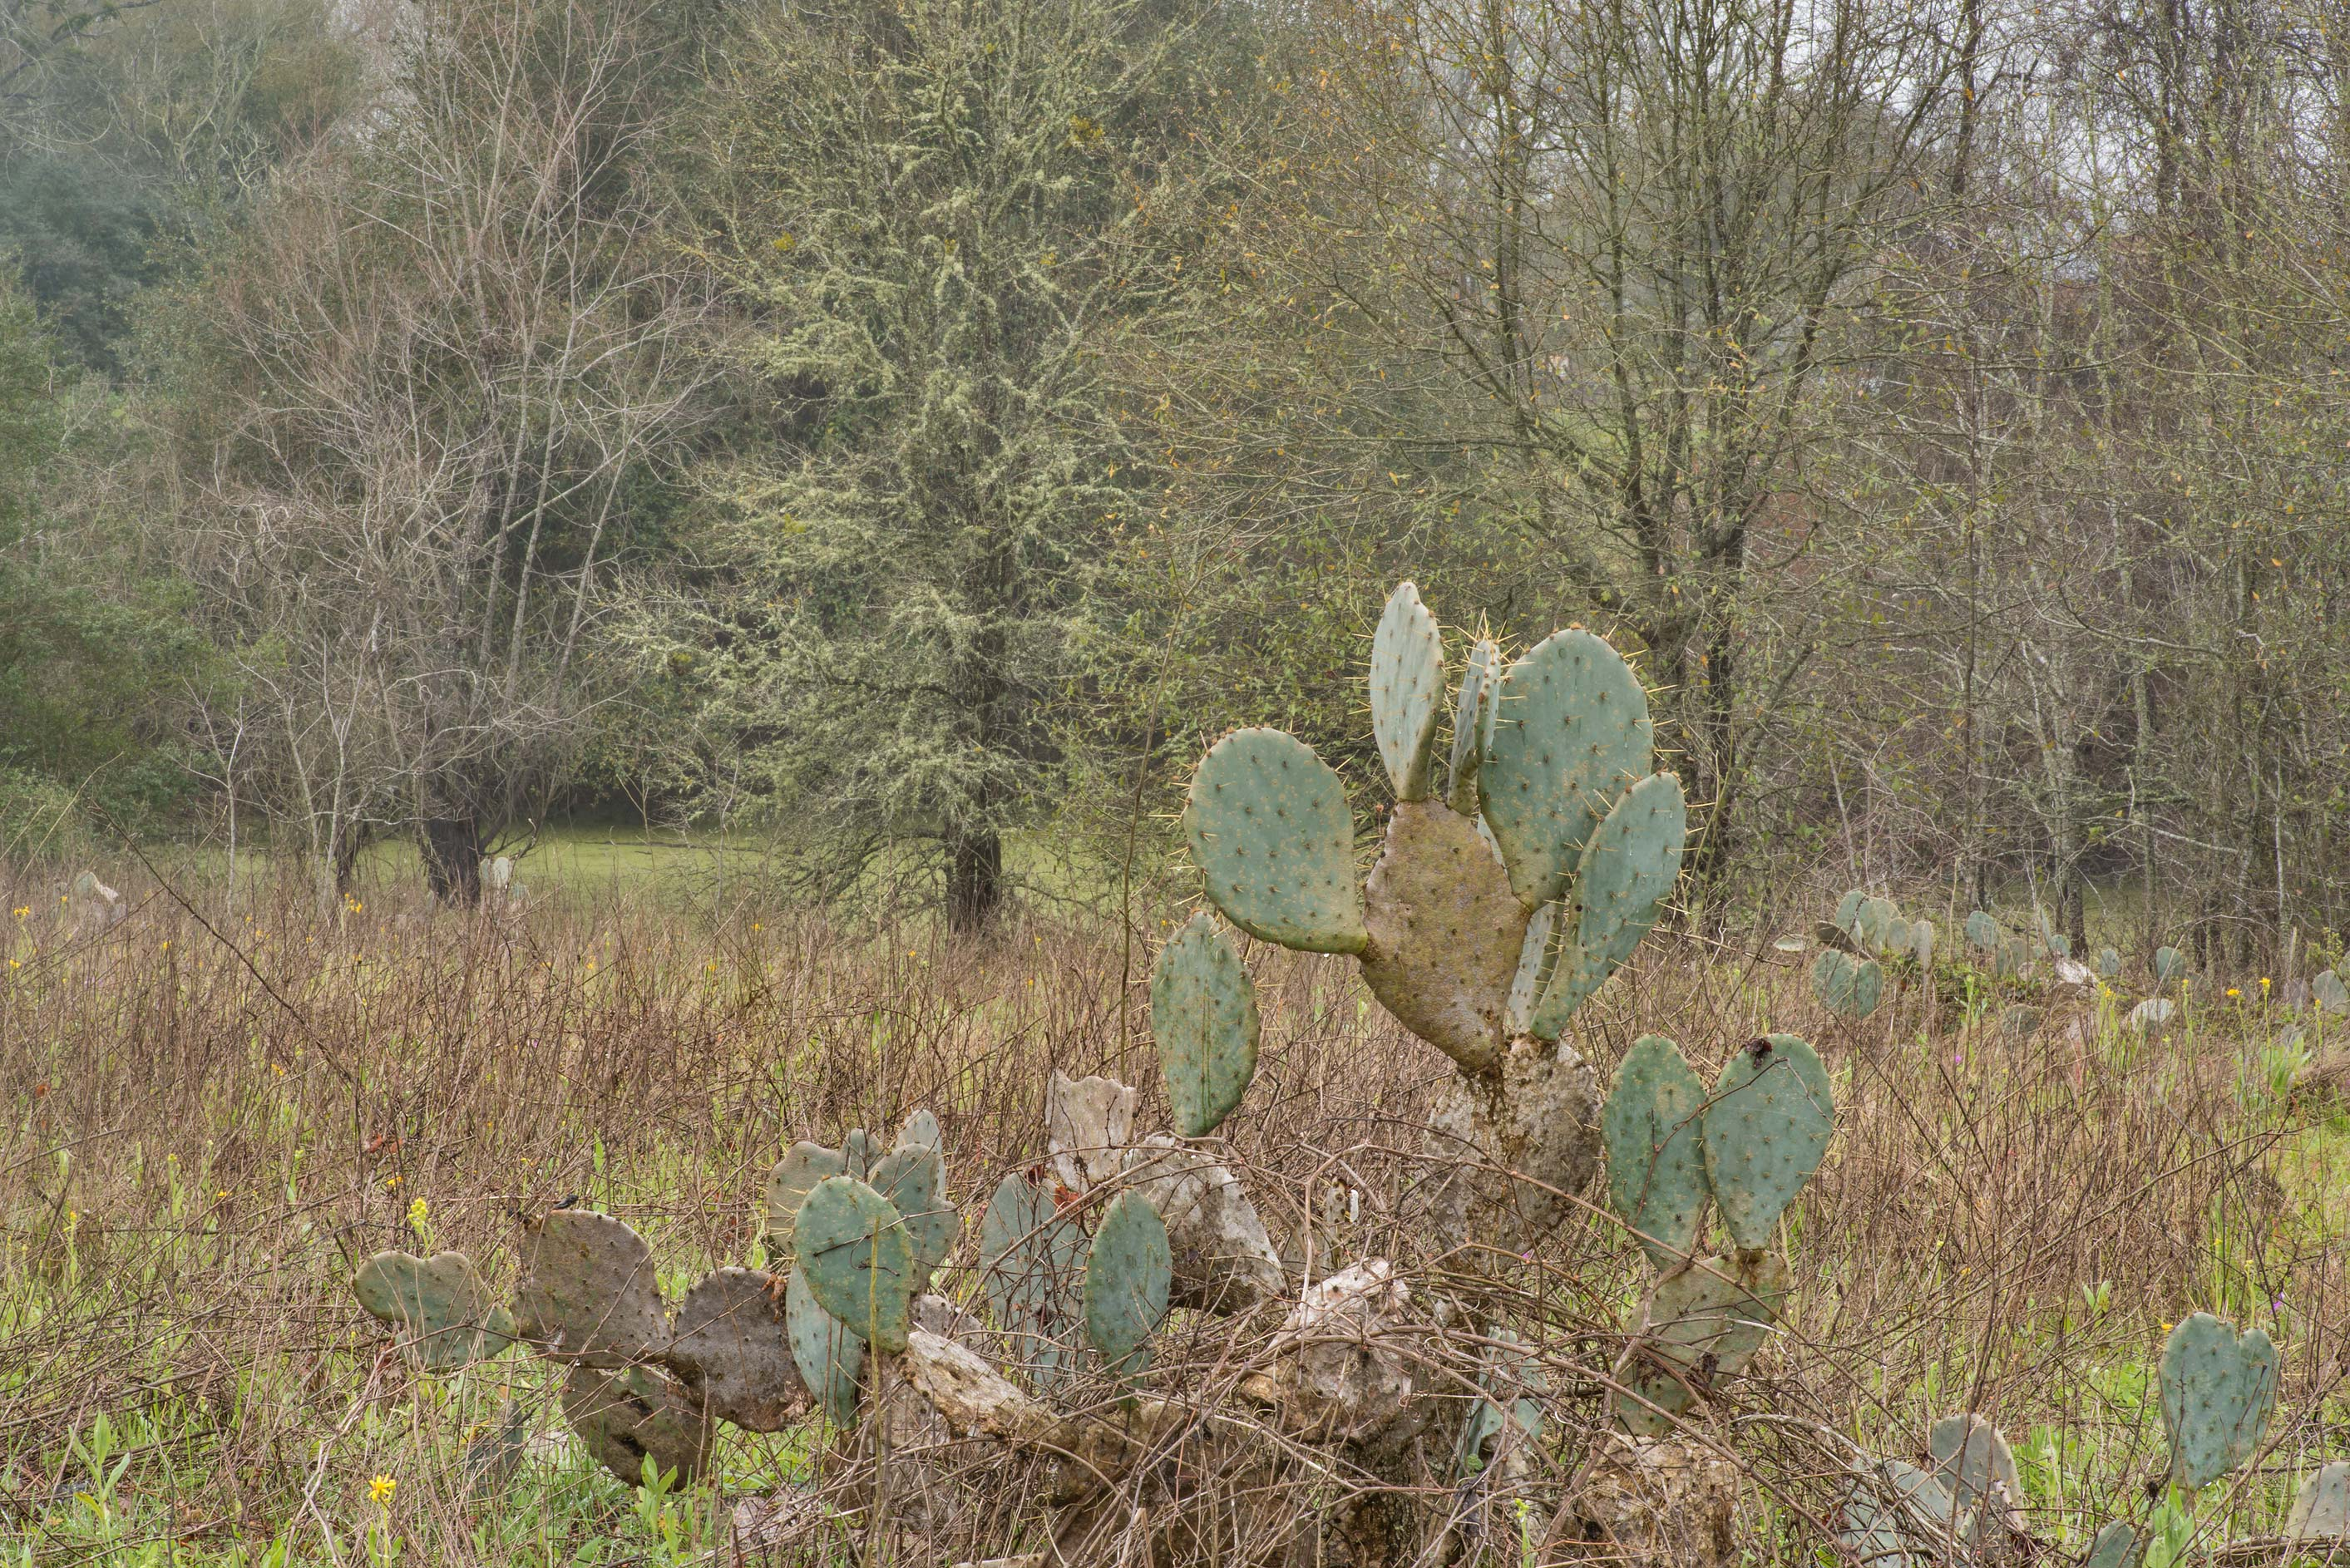 Prickly pear cacti (Opuntia) in Washington-on-the...State Historic Site. Washington, Texas